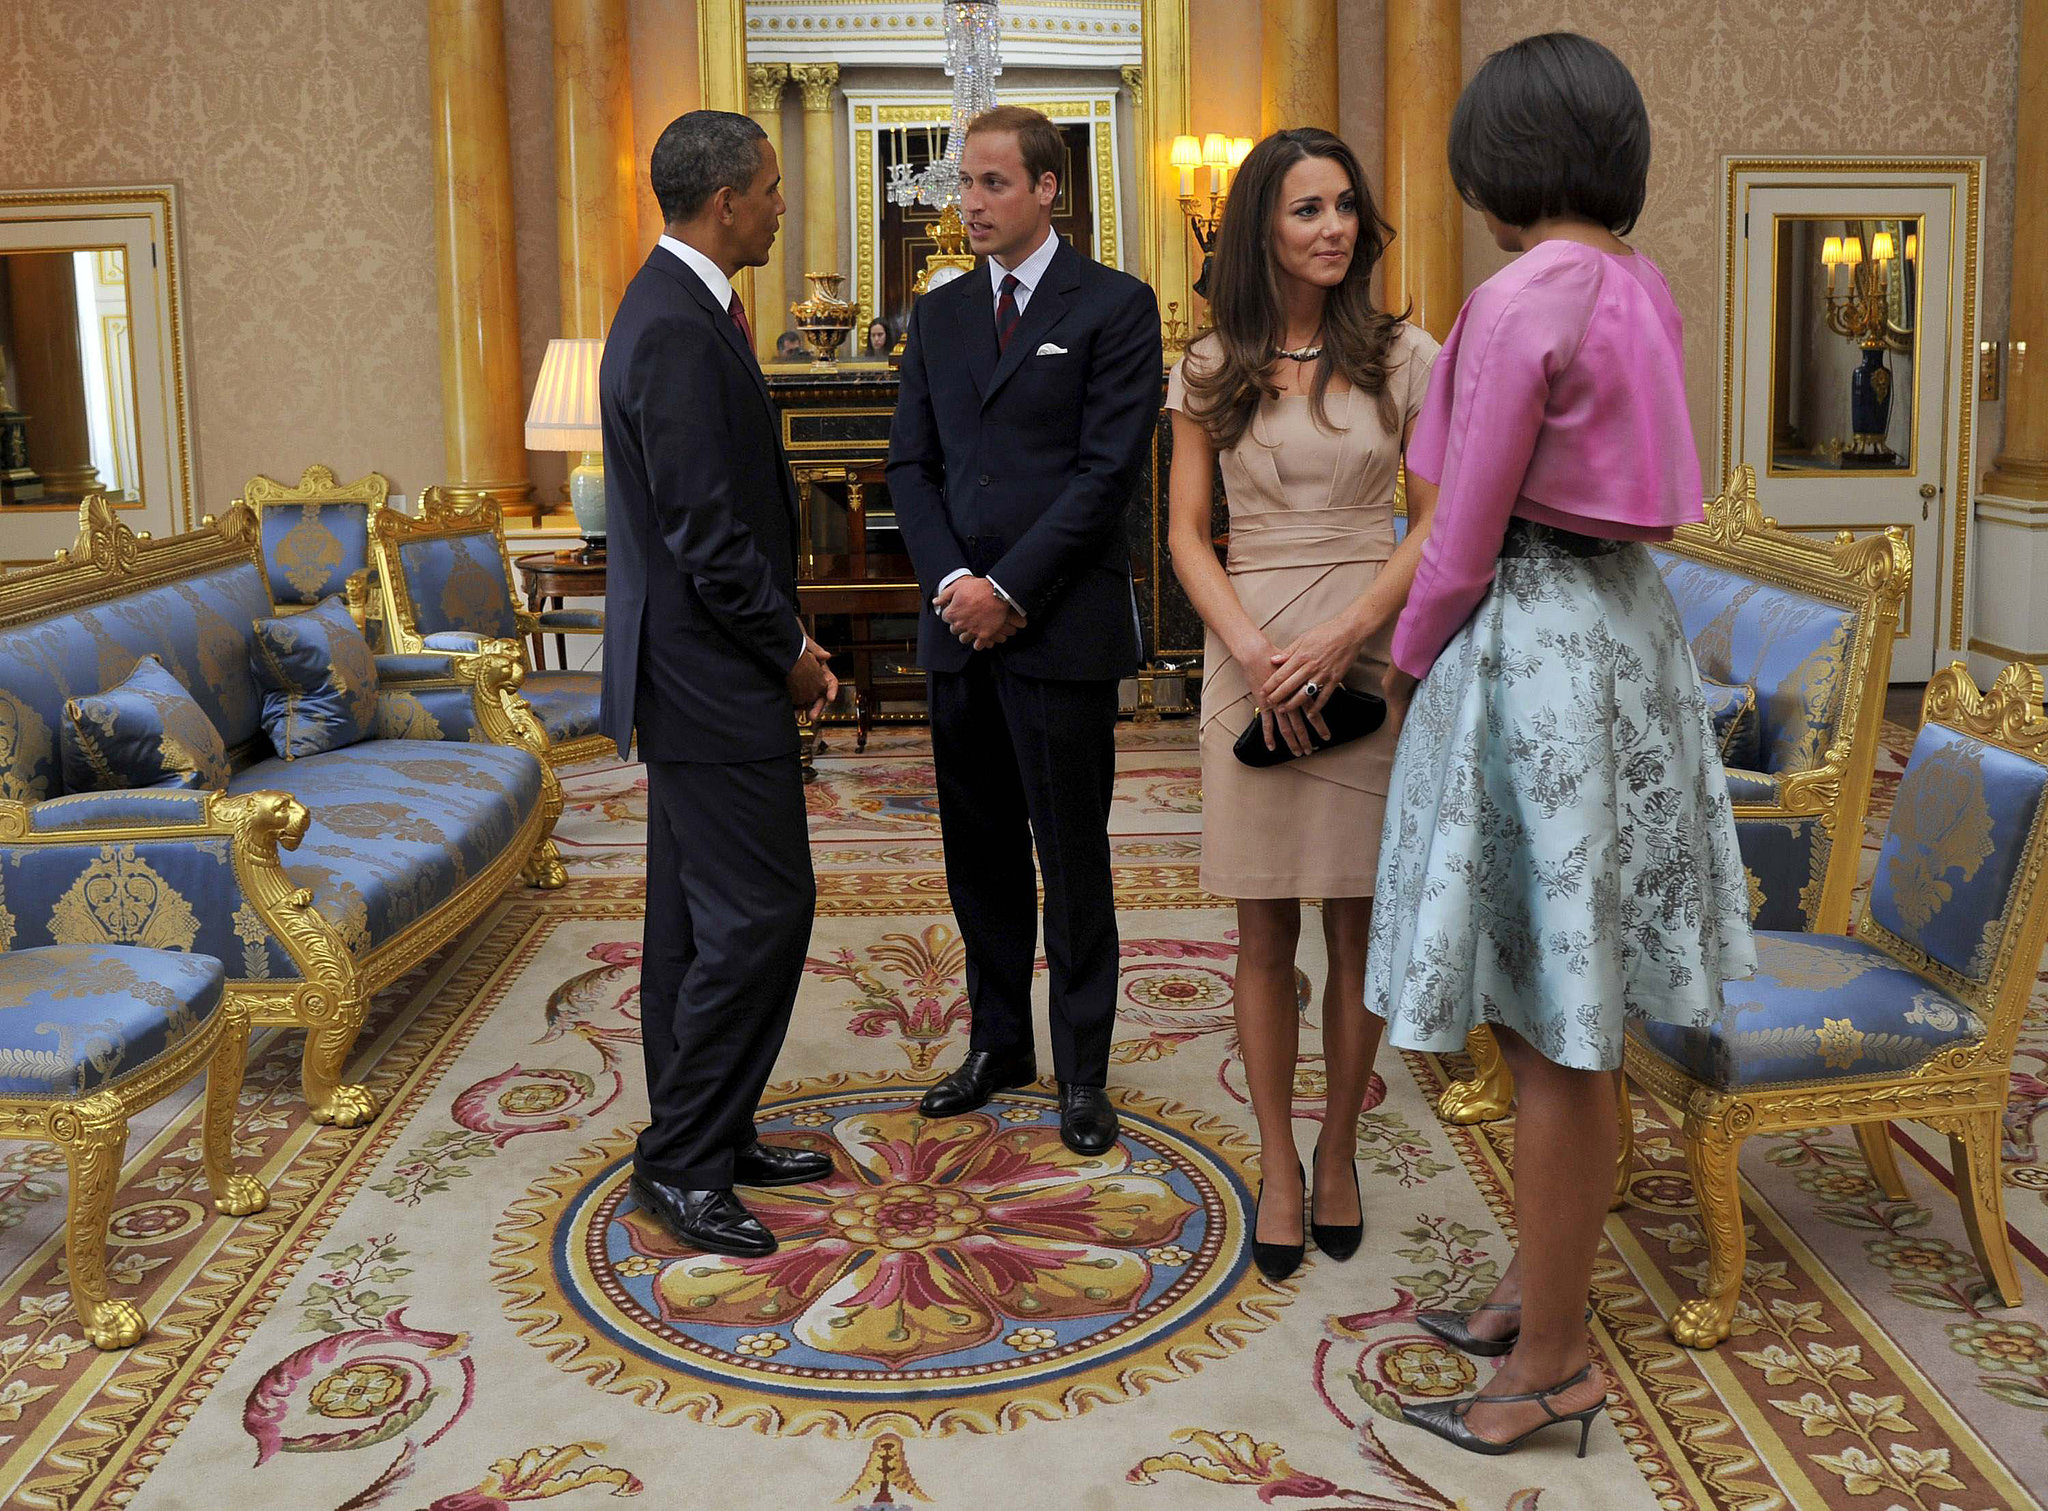 Kate and William met with President Barack Obama and First Lady Michelle Obama when the Obamas made a state visit to London in May 2011.